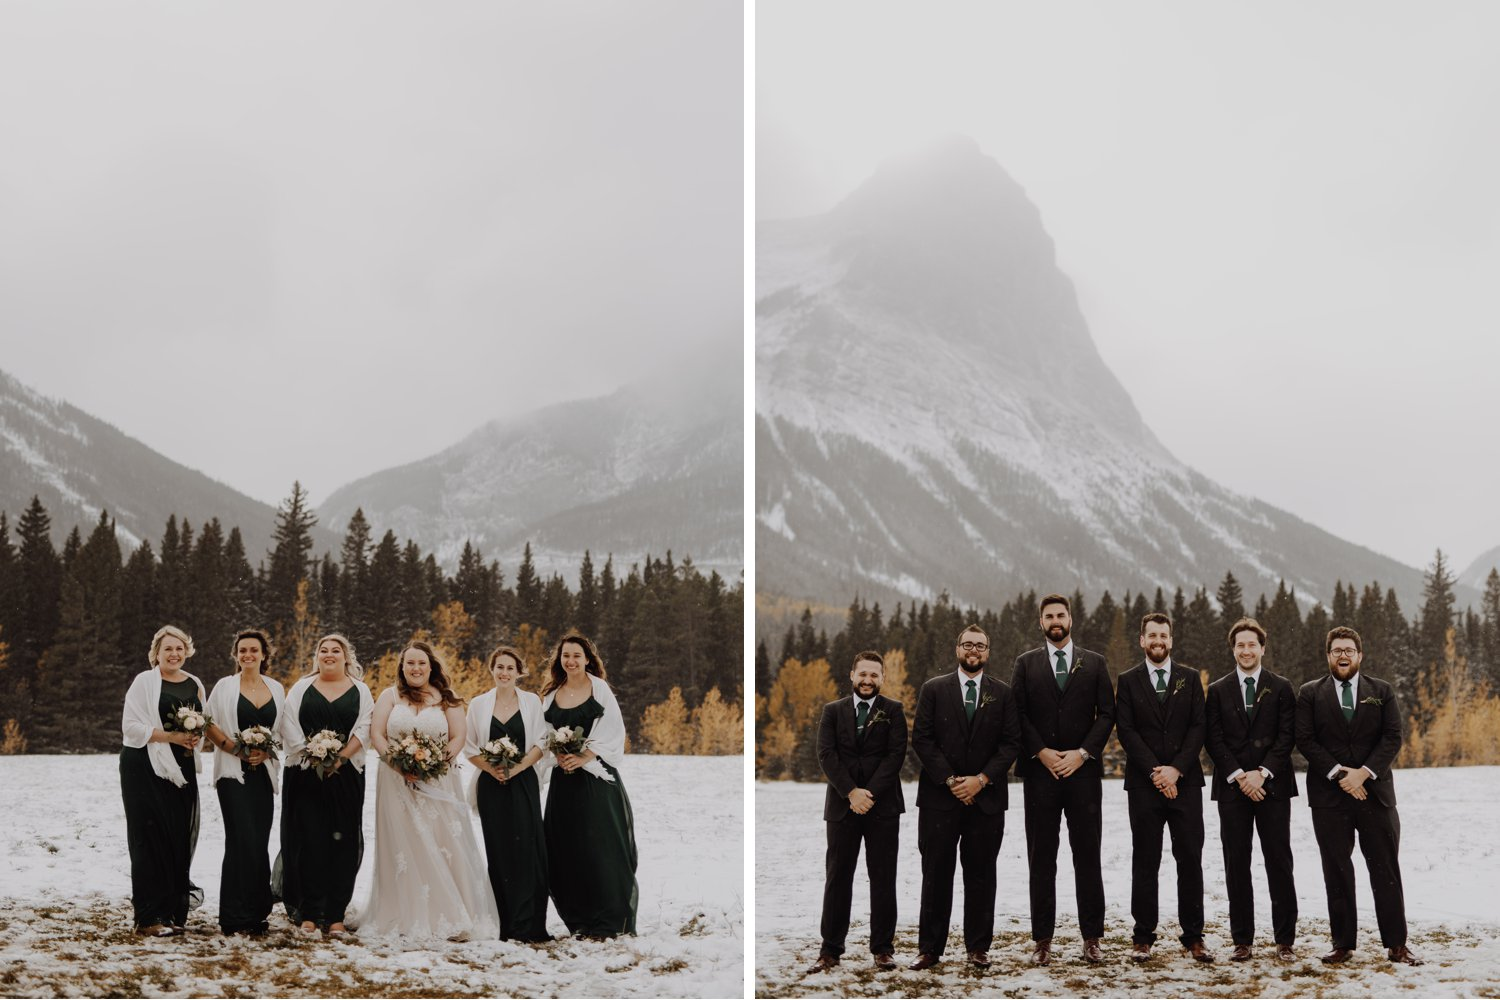 Banff Wedding - wedding party in the rocky mountains